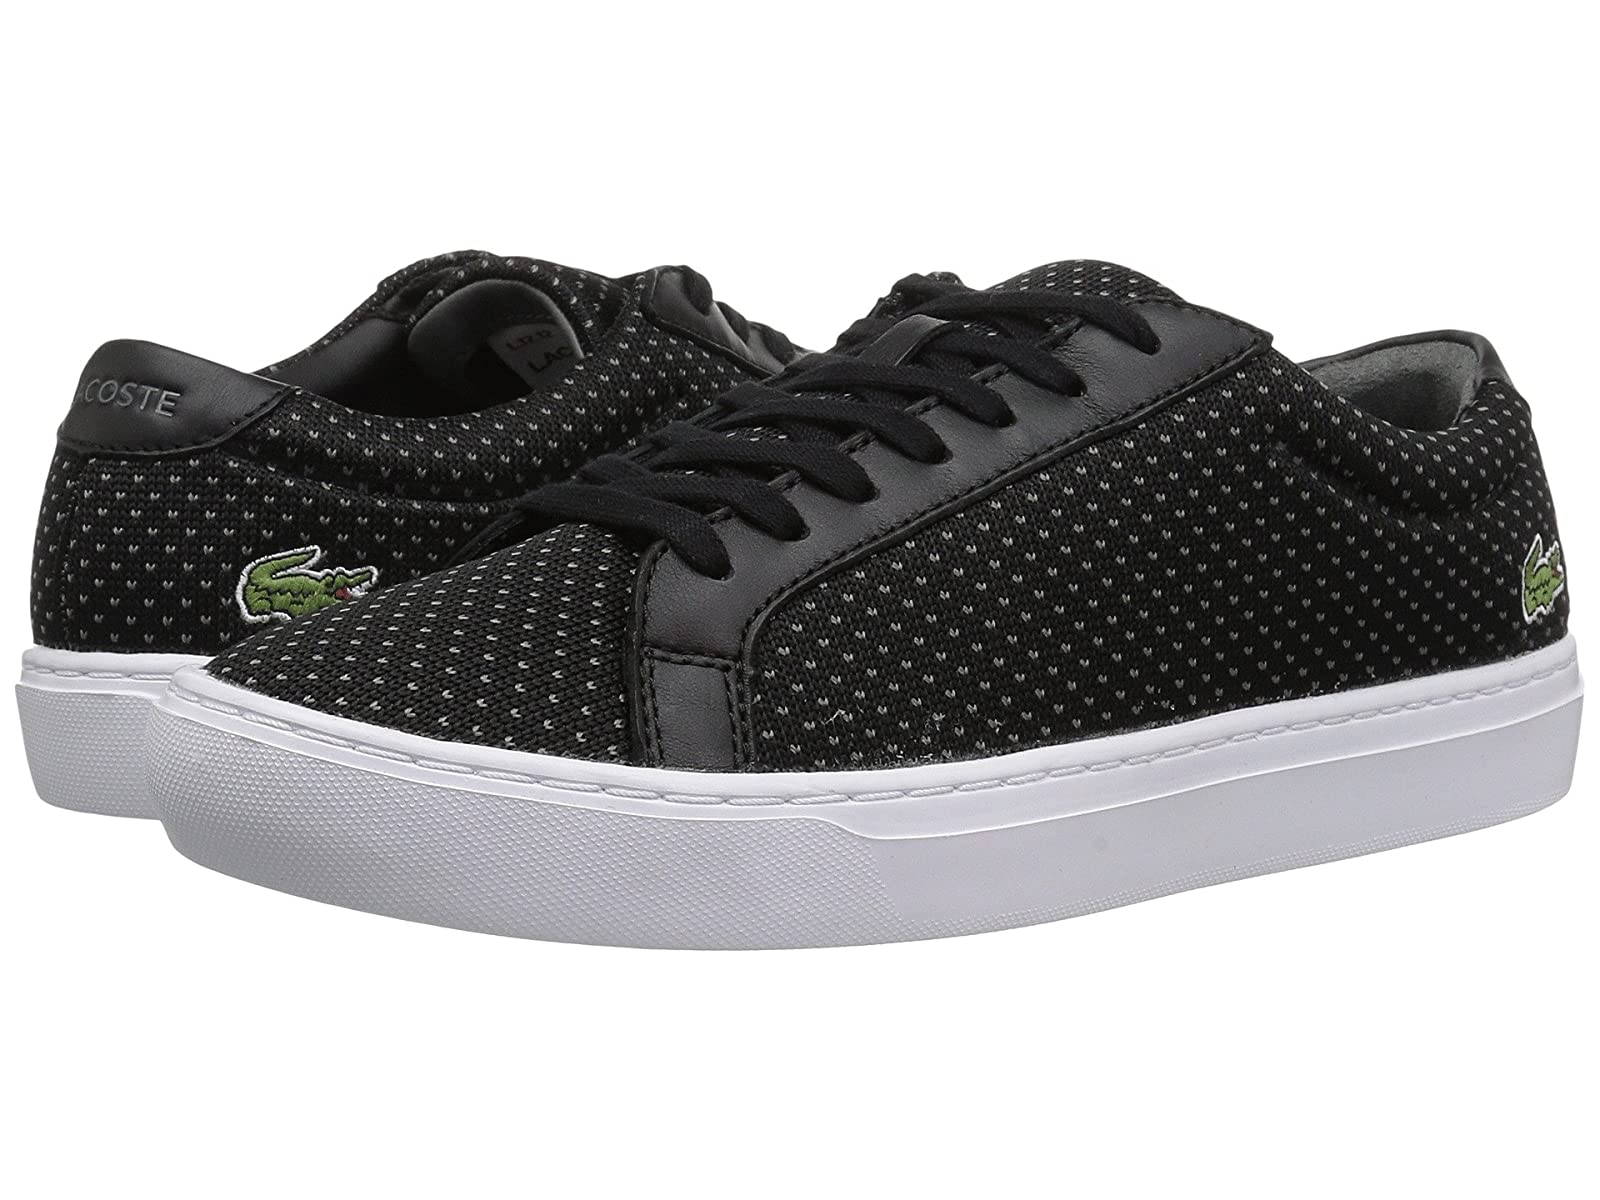 Lacoste L.12.12 Lightweight 118 1Atmospheric grades have affordable shoes